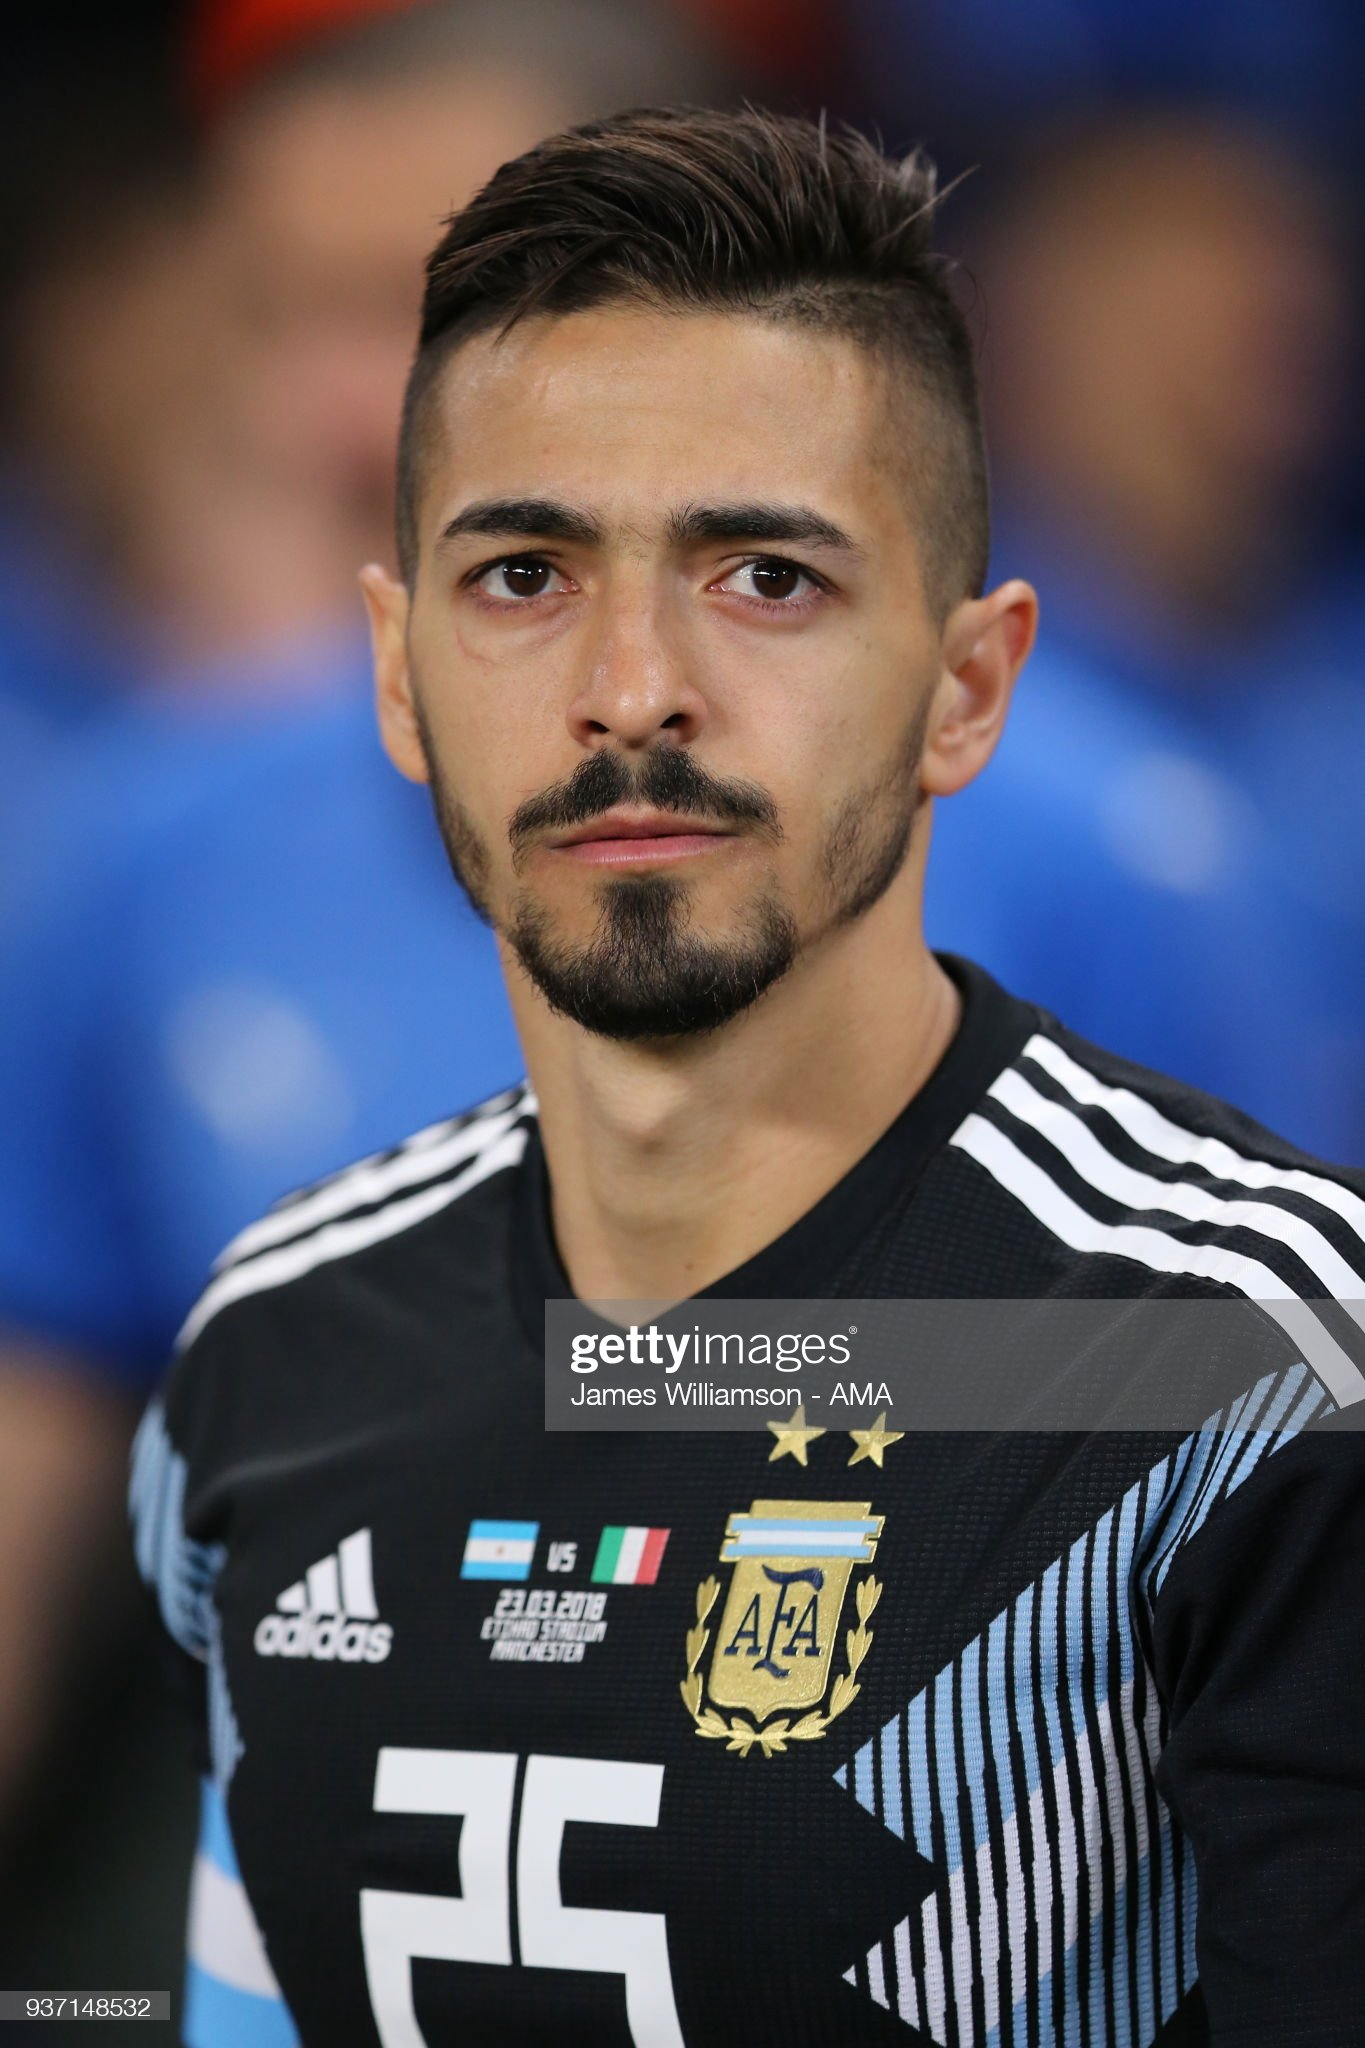 [Imagen: manuel-lanzini-of-argentina-during-an-in...=2048x2048]